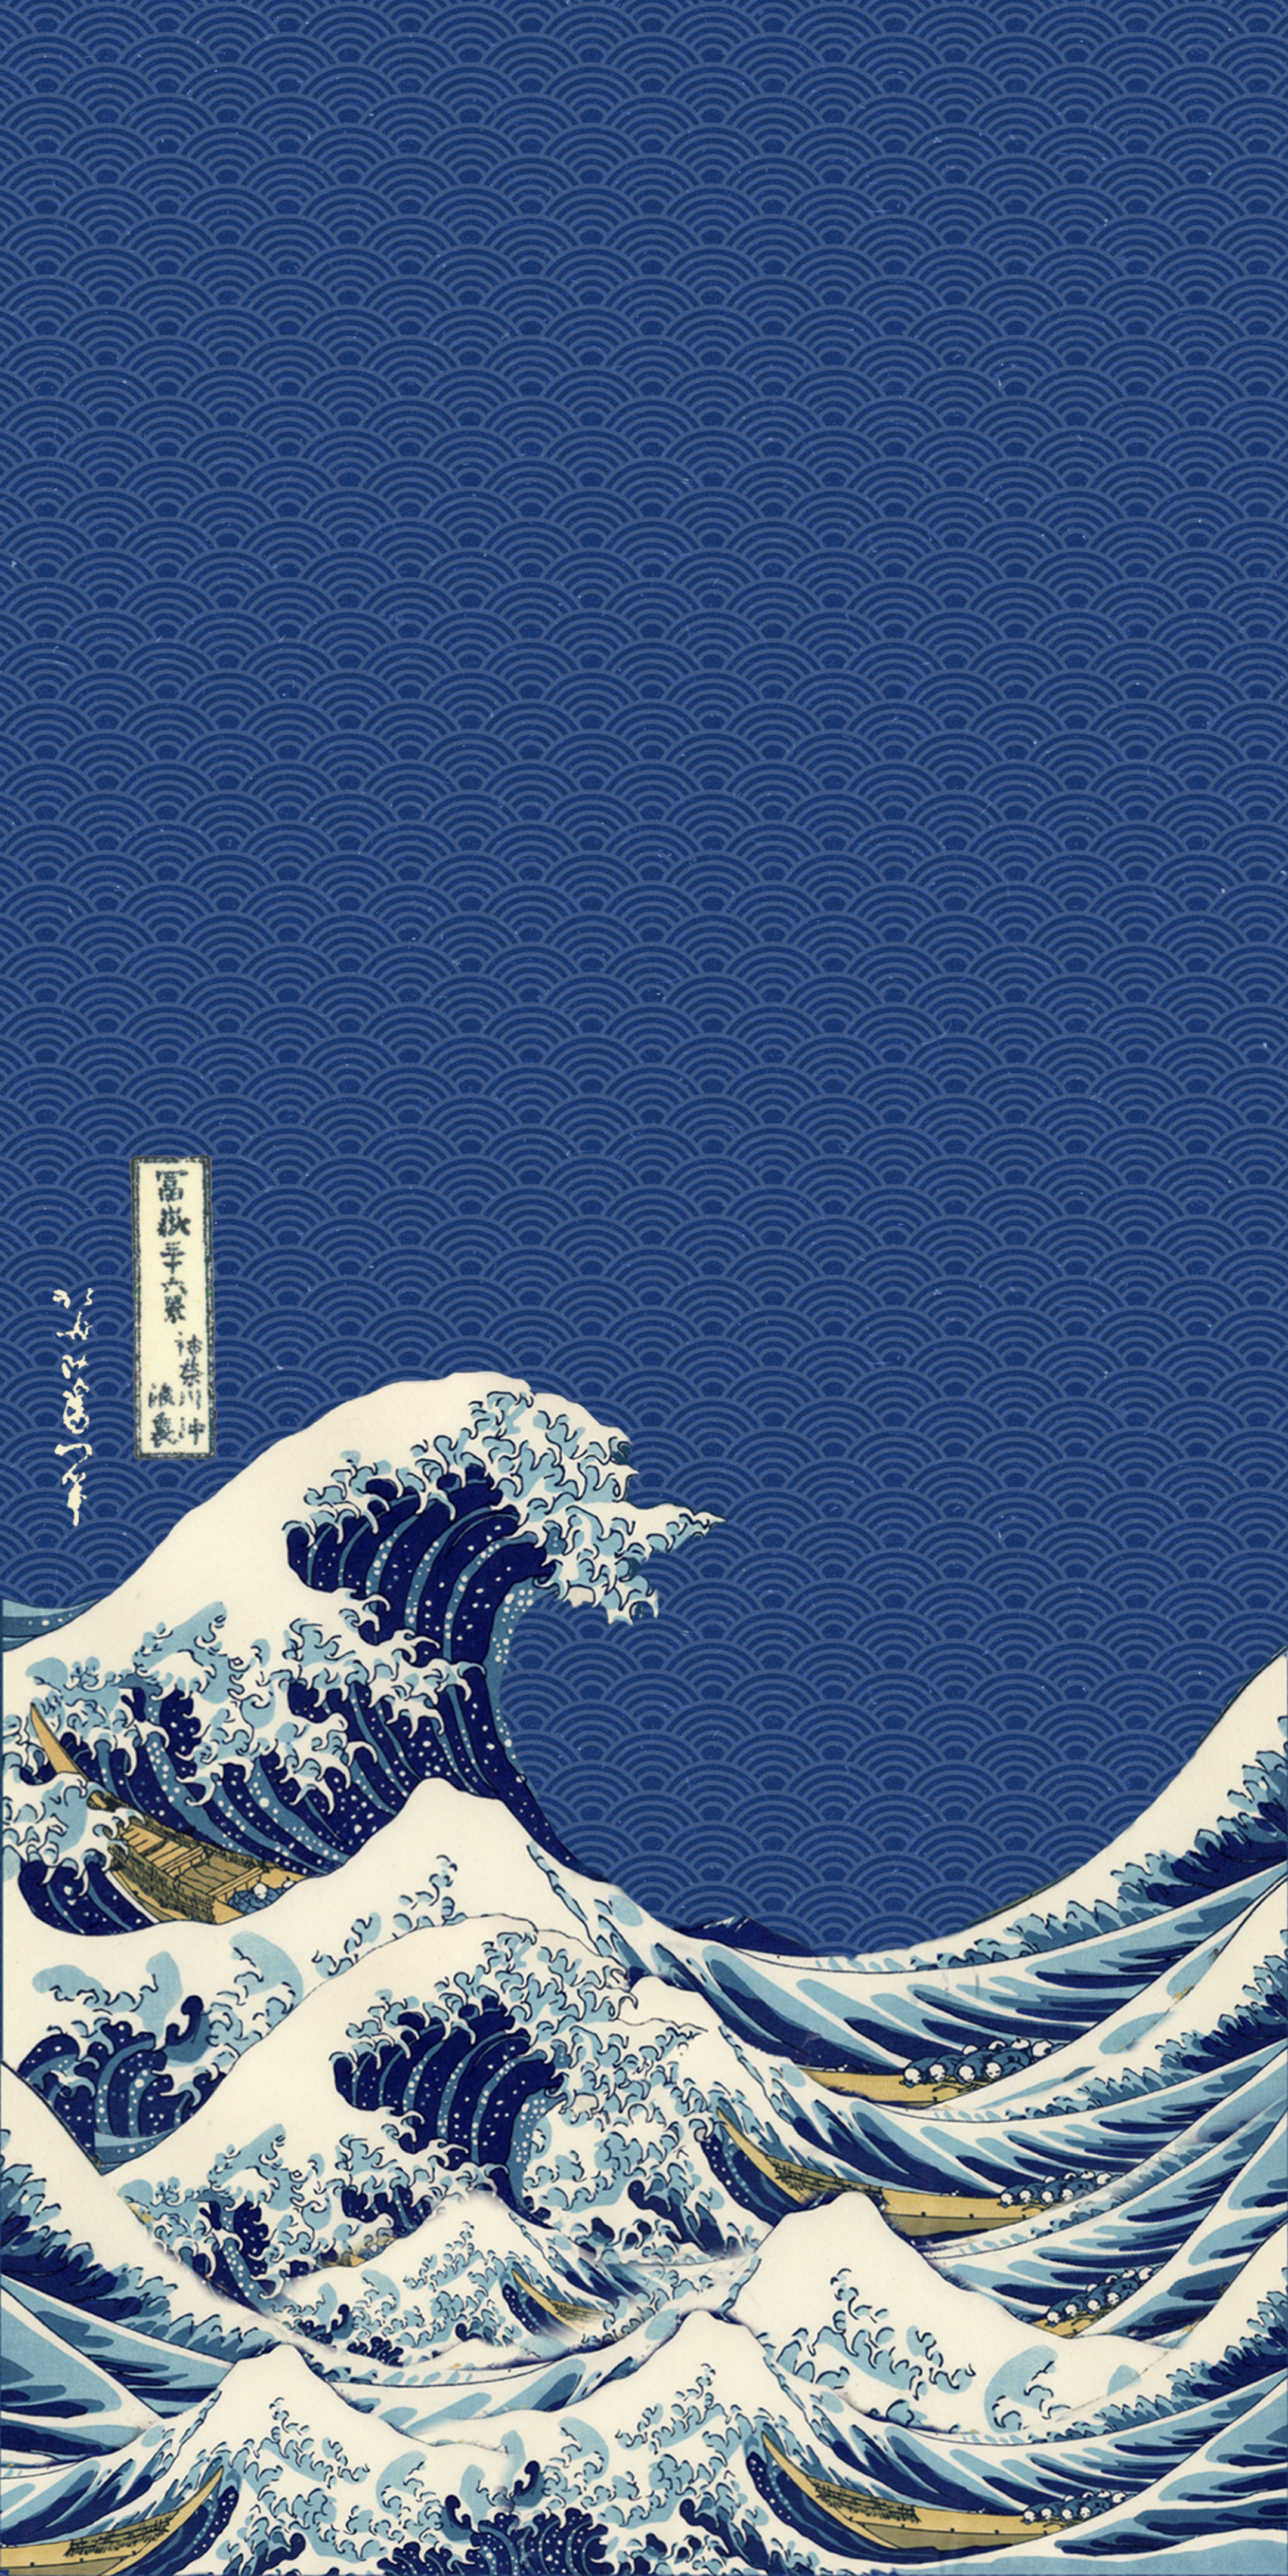 Great Wave Of Kanagawa Think You Guys Could Find Me A Wallpaper Similar To This Waves Wallpaper Iphone Japanese Wallpaper Iphone Vaporwave Wallpaper